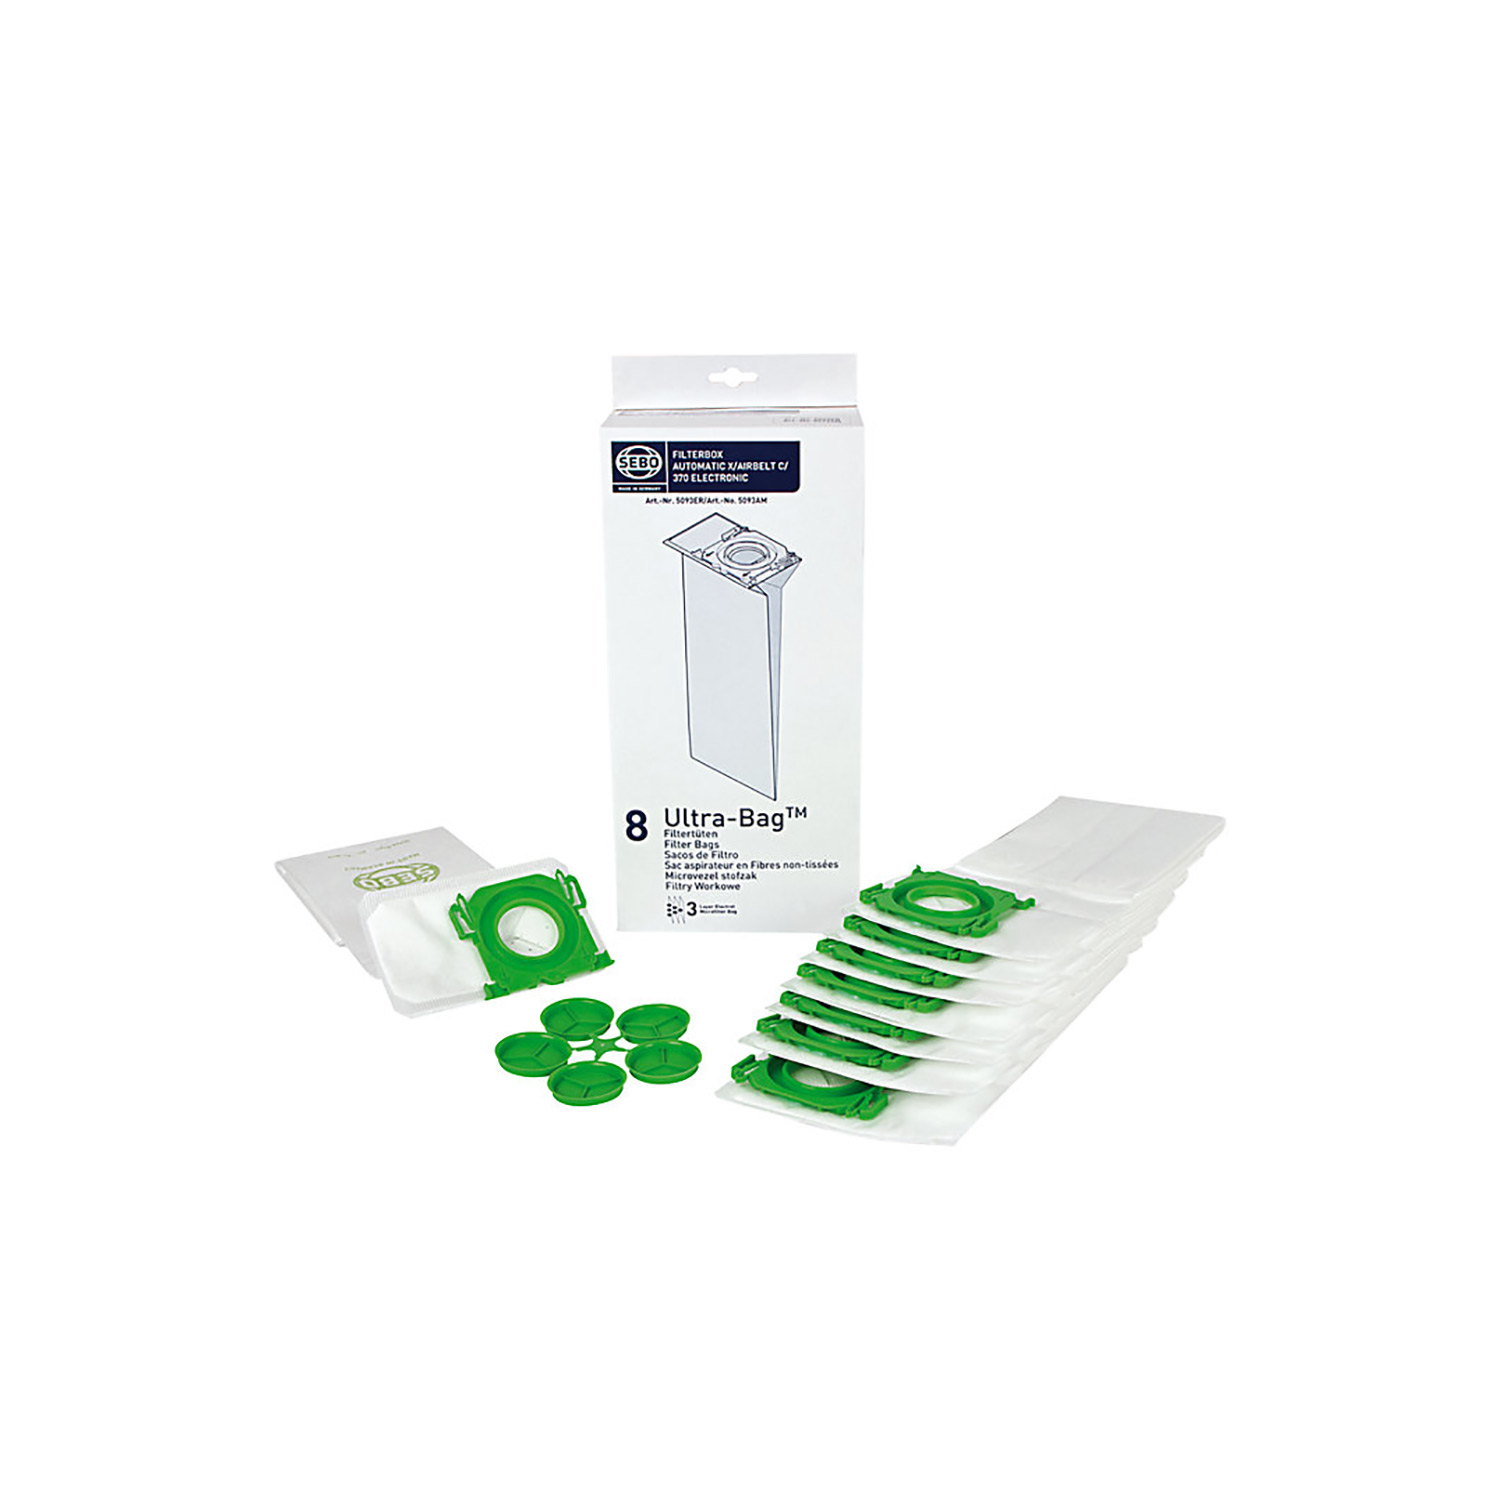 50 x 5093ER Dust Bags for SEBO Automatic X Vacuum Cleaner NEW